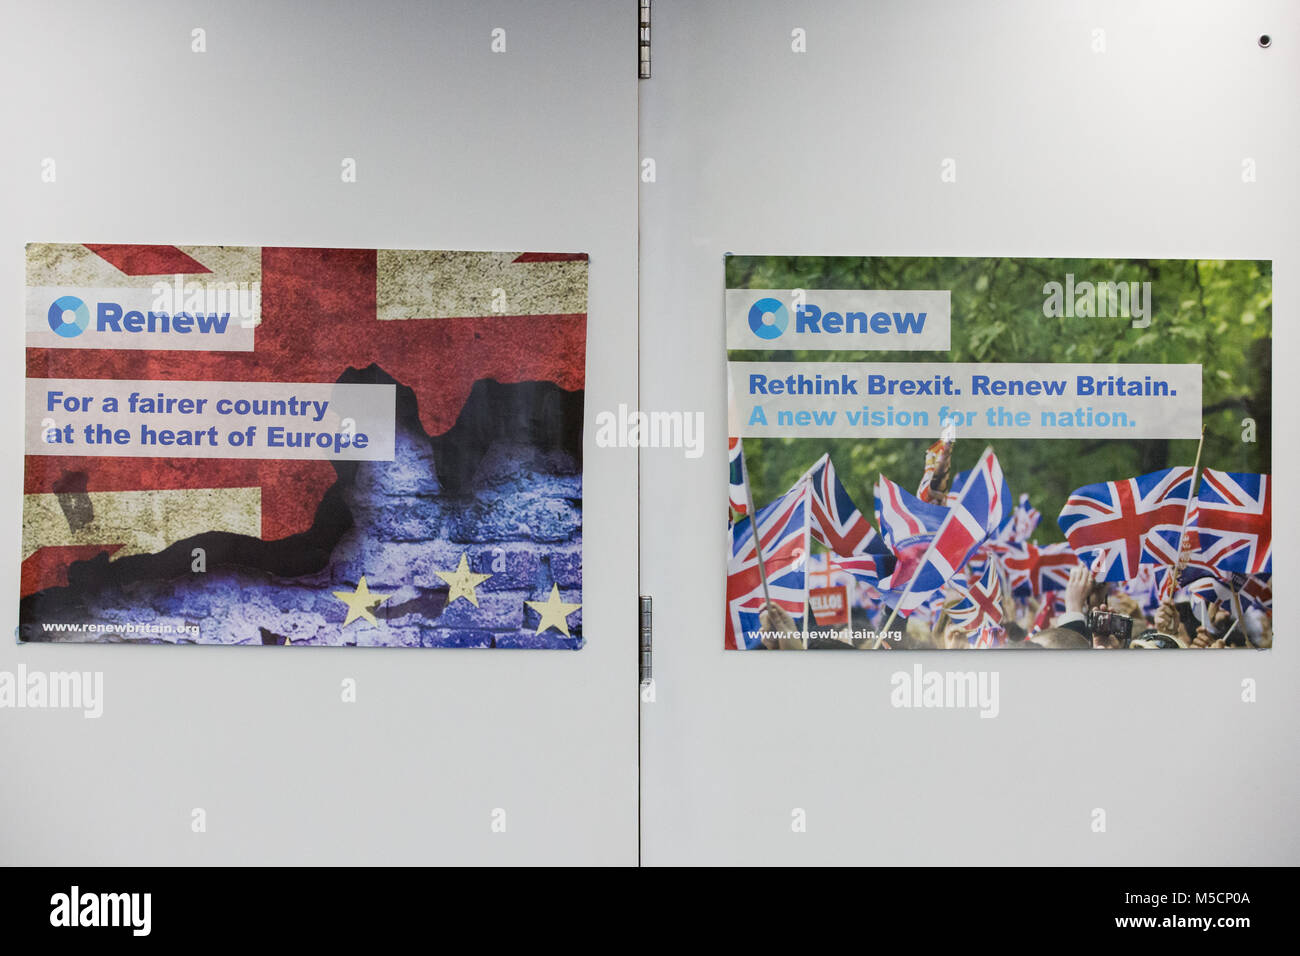 London, UK. 19th February, 2018. Marketing materials at the launch of the Renew Political Party in Westminster. - Stock Image